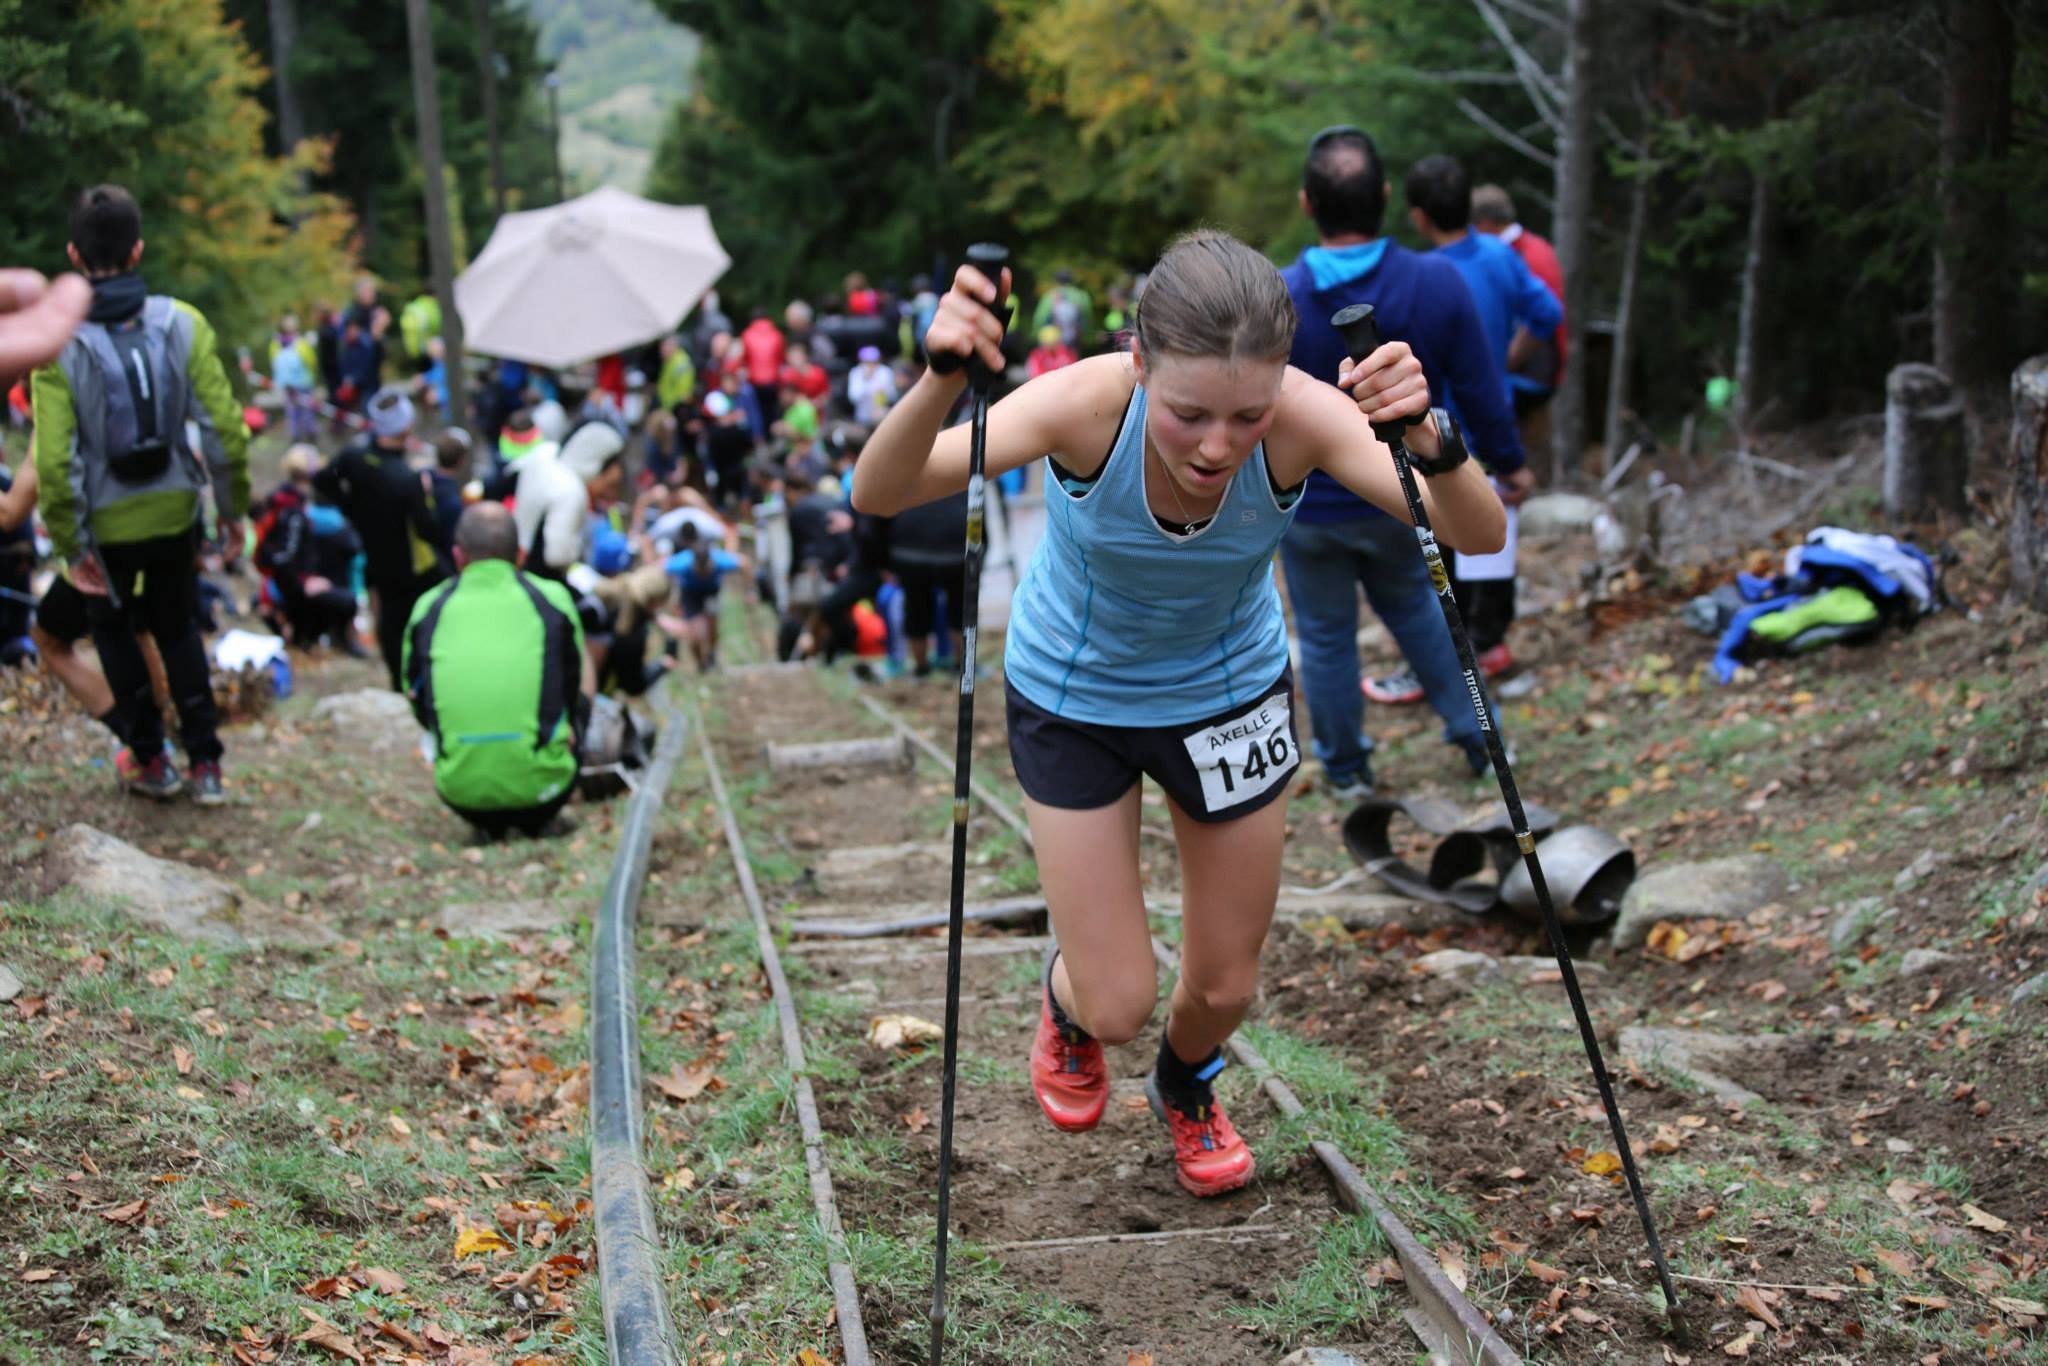 10633141 10152816642954176 825357636819518617 o - PHOTOS DES ATHLETES FEMININES SUR LE KM VERTICAL DE FULLY (SUISSE) / 25-10-14